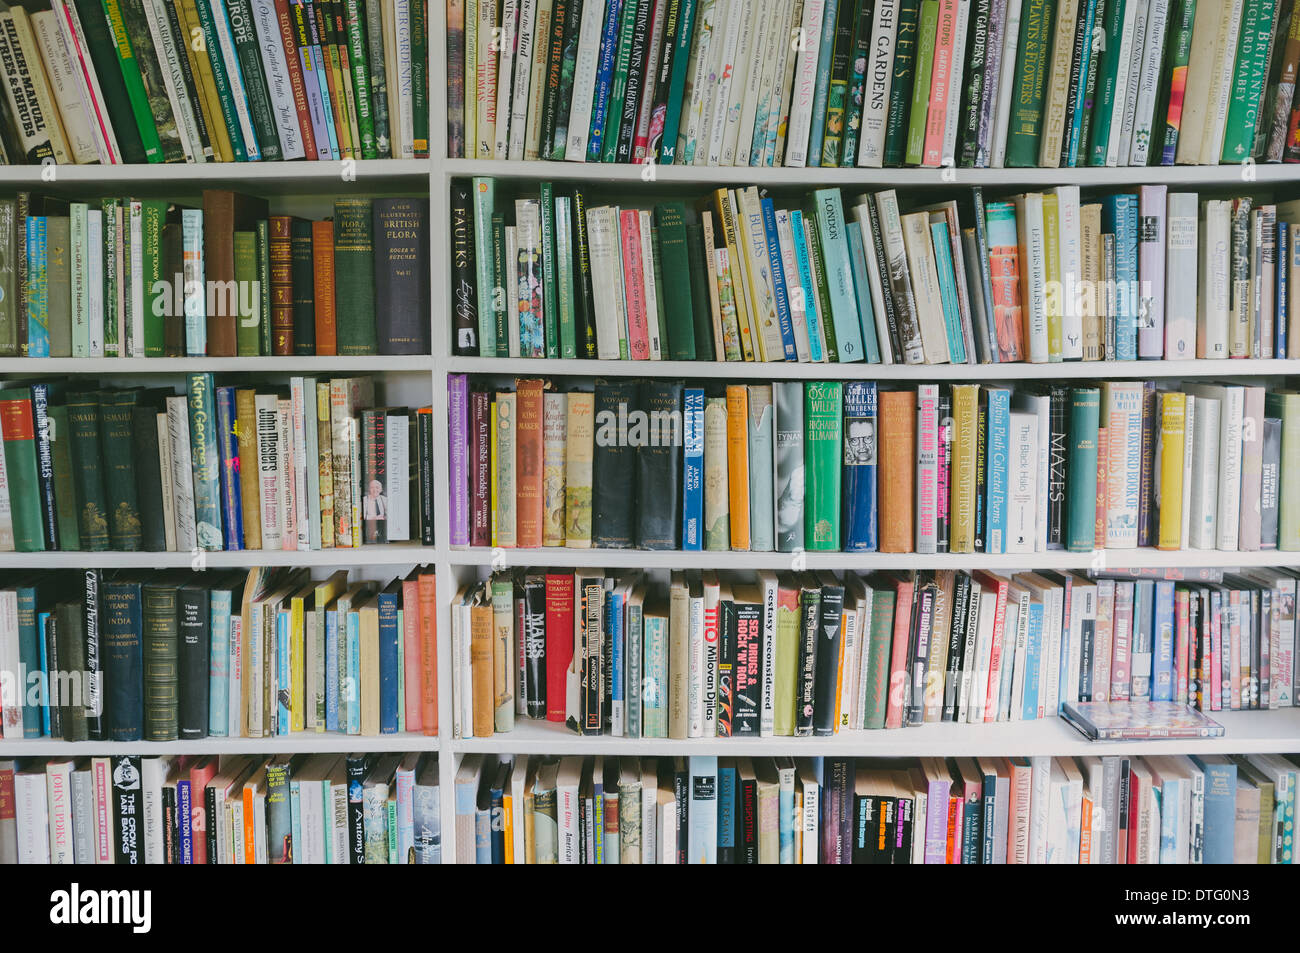 Old Books on a bookshelf - Stock Image